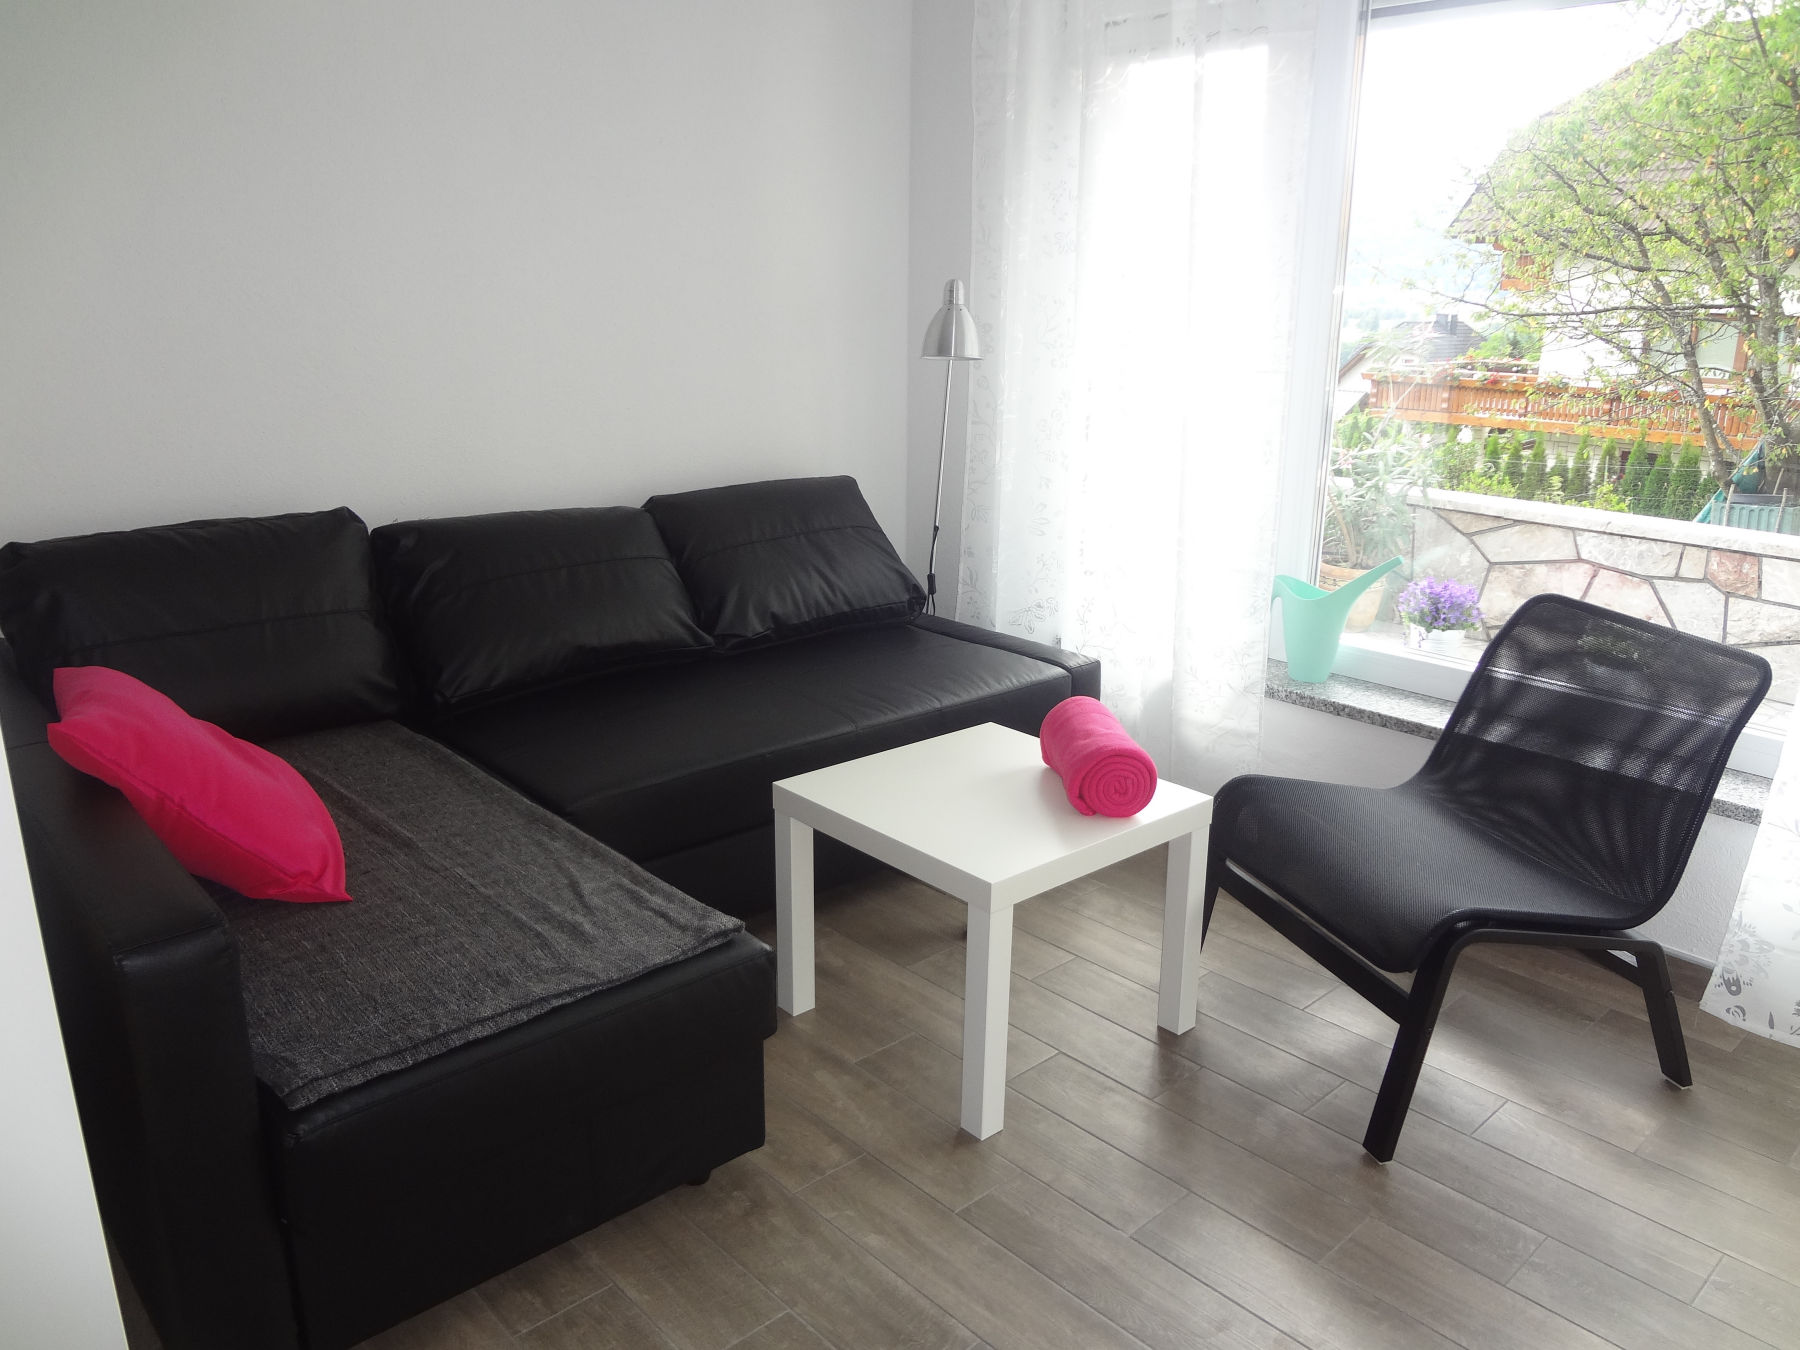 A sofa in the living area of the ground floor apartment located near Lake Bled, Slovenia